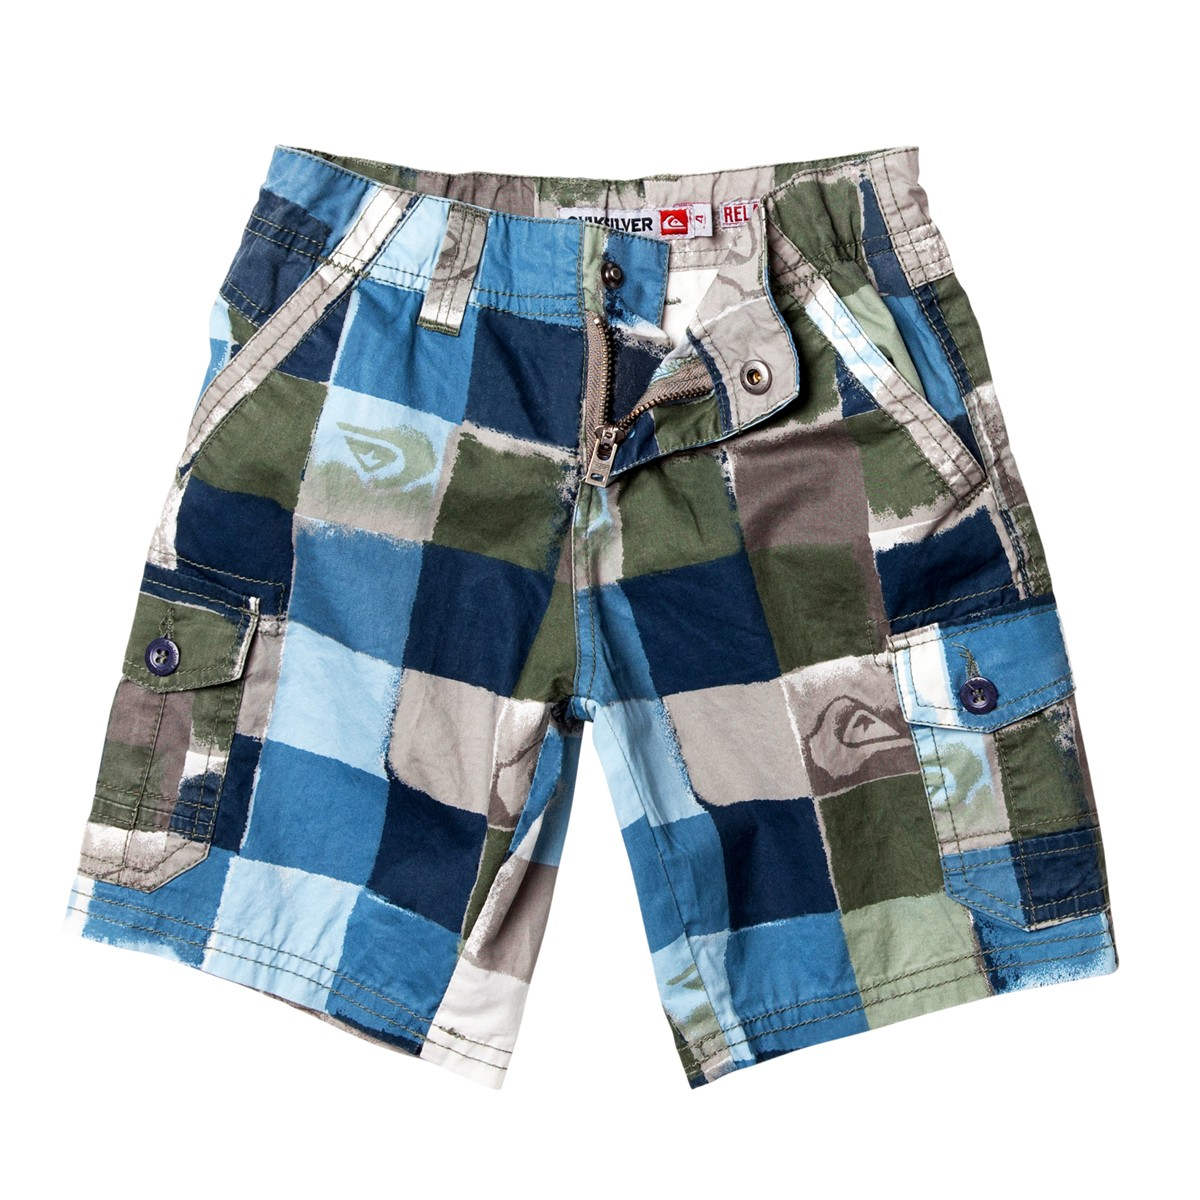 Enjoy free shipping and easy returns every day at Kohl's. Find great deals on Boys Shorts at Kohl's today!